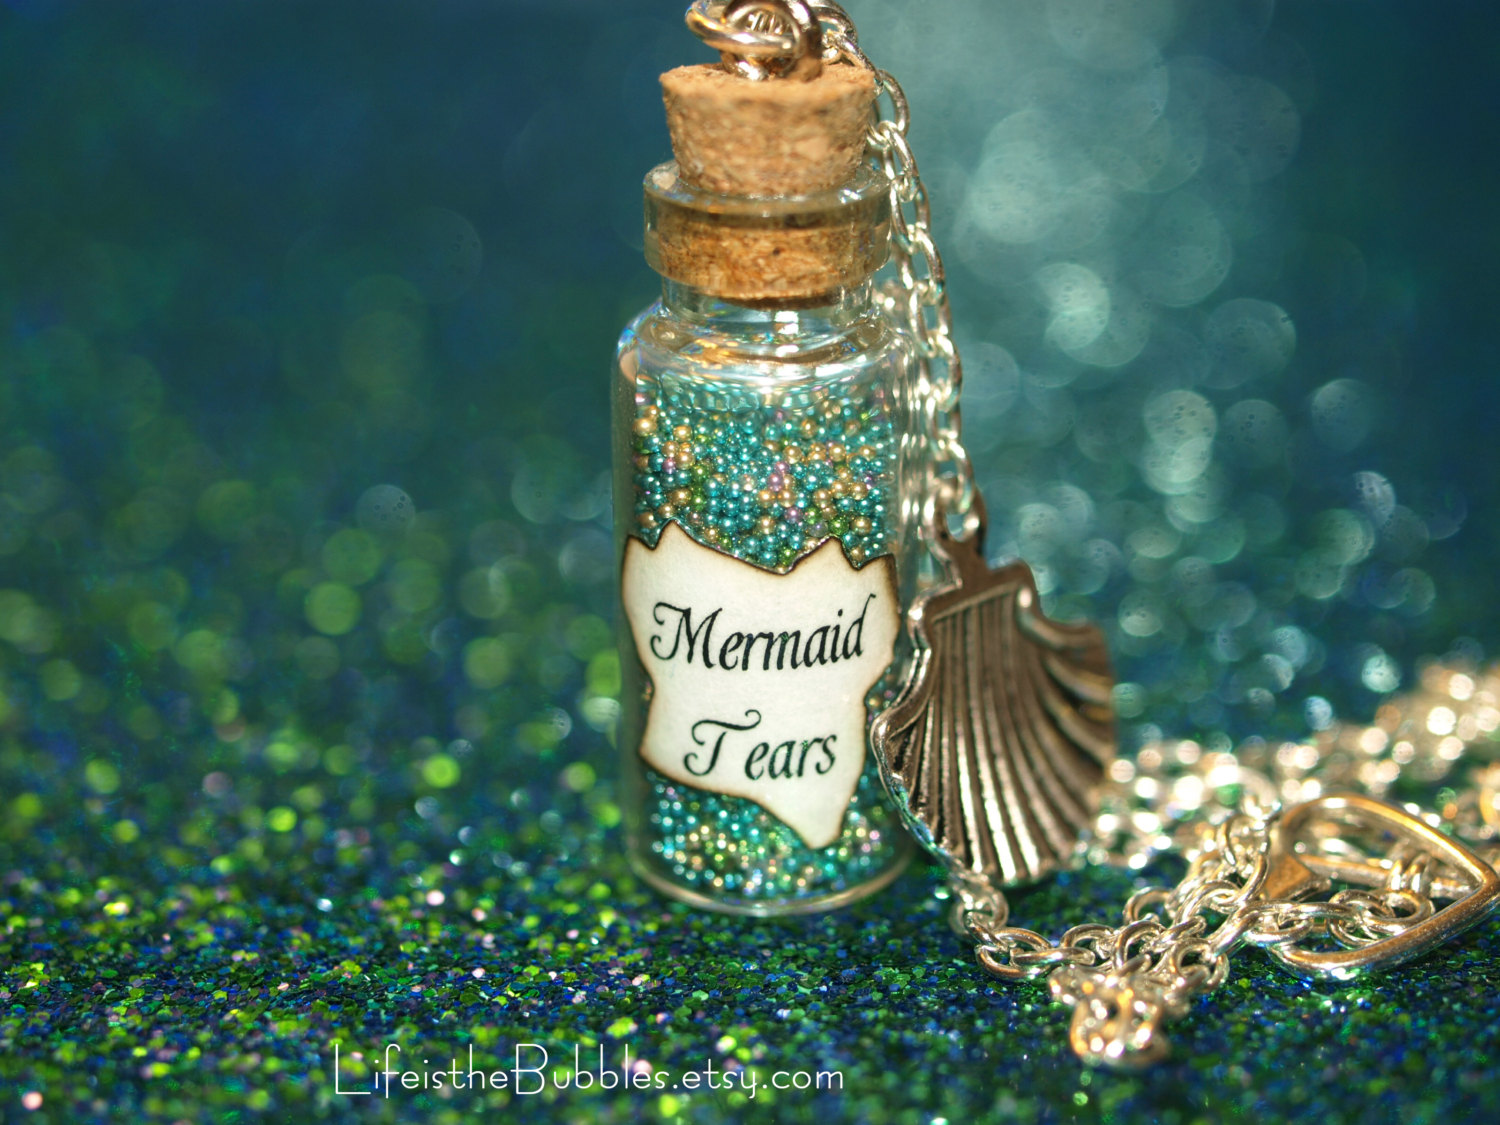 Mermaid Tears Bottle Necklace Sea Shell Charm by LifeistheBubbles.